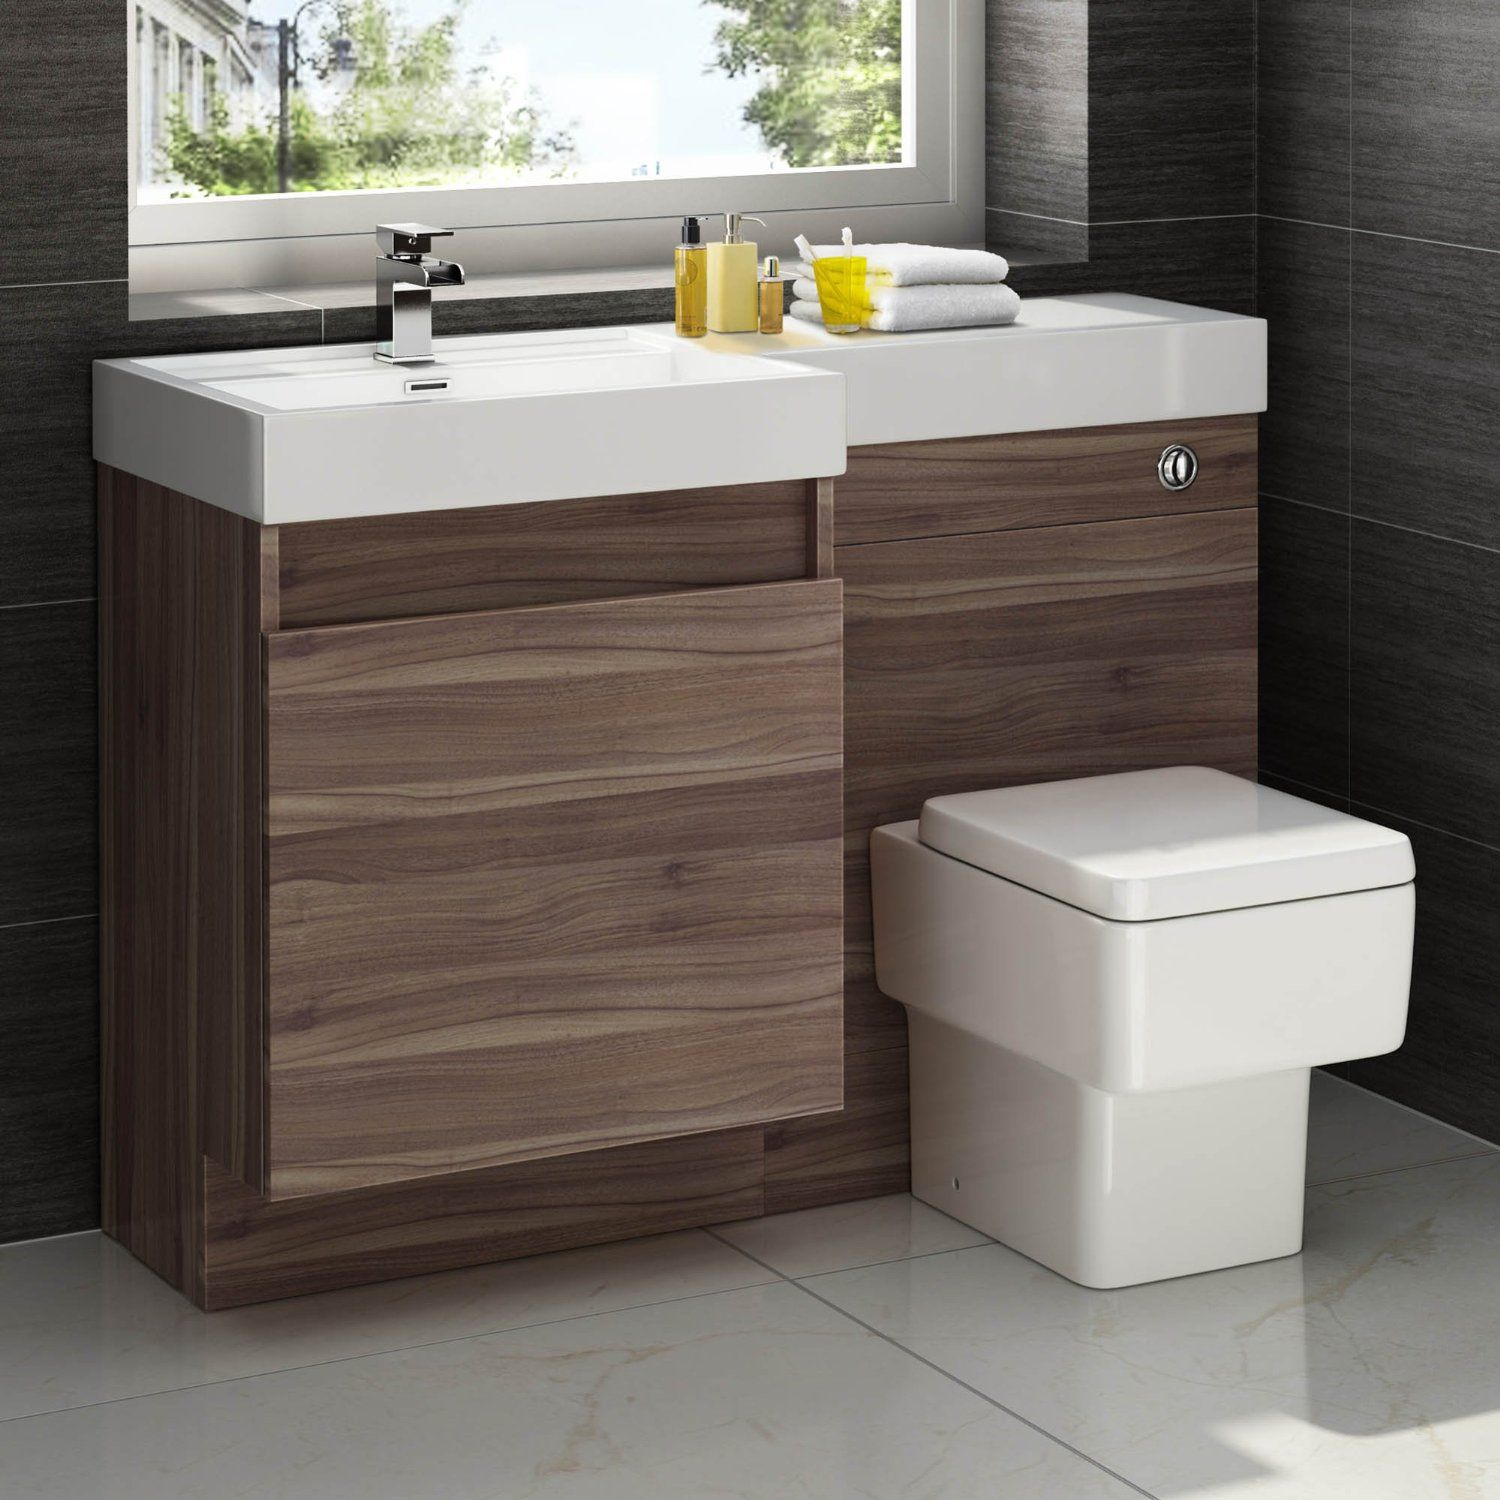 1200mm Vanity Units 1200mm Walnut Vanity Unit Square Toilet Bathroom Sink Left